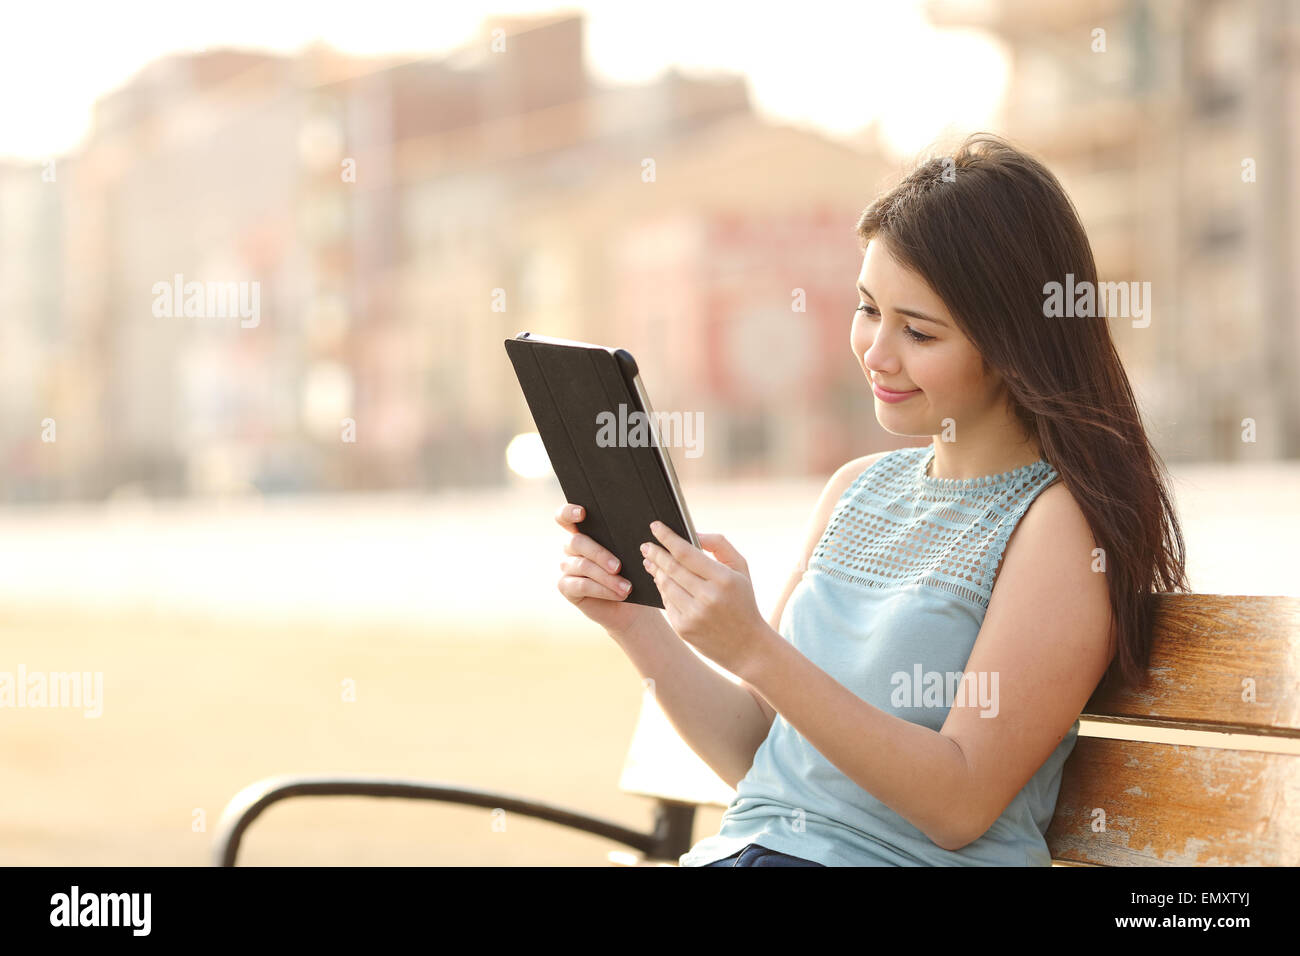 Happy teen student girl reading a tablet or ebook and learning in a park - Stock Image